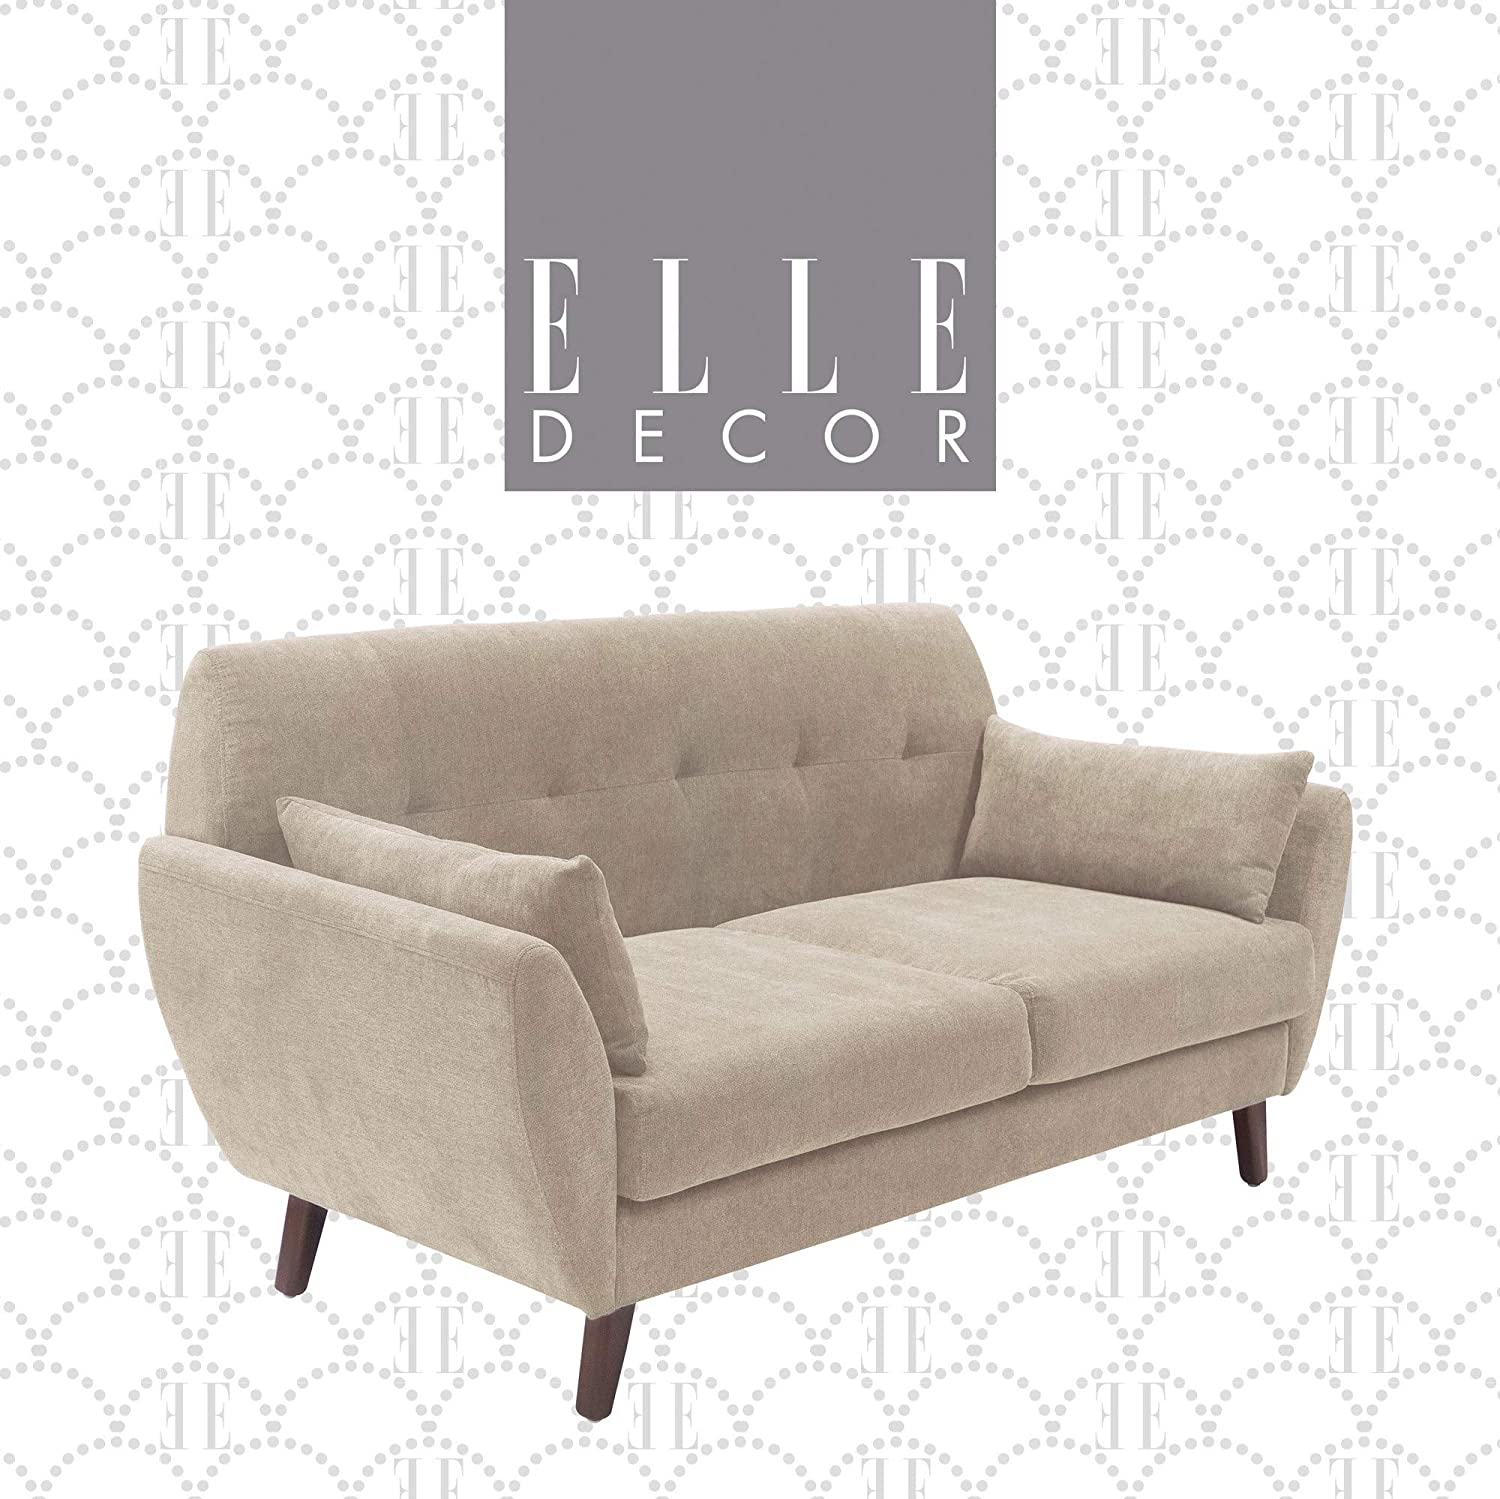 "Elle Decor Amelie Upholstered Sofa Collection Mid Century Modern Design Couch with Flared Arms, Pet Friendly Fabric Upholstery, Tool-Free Assembly, 73"", Beige"